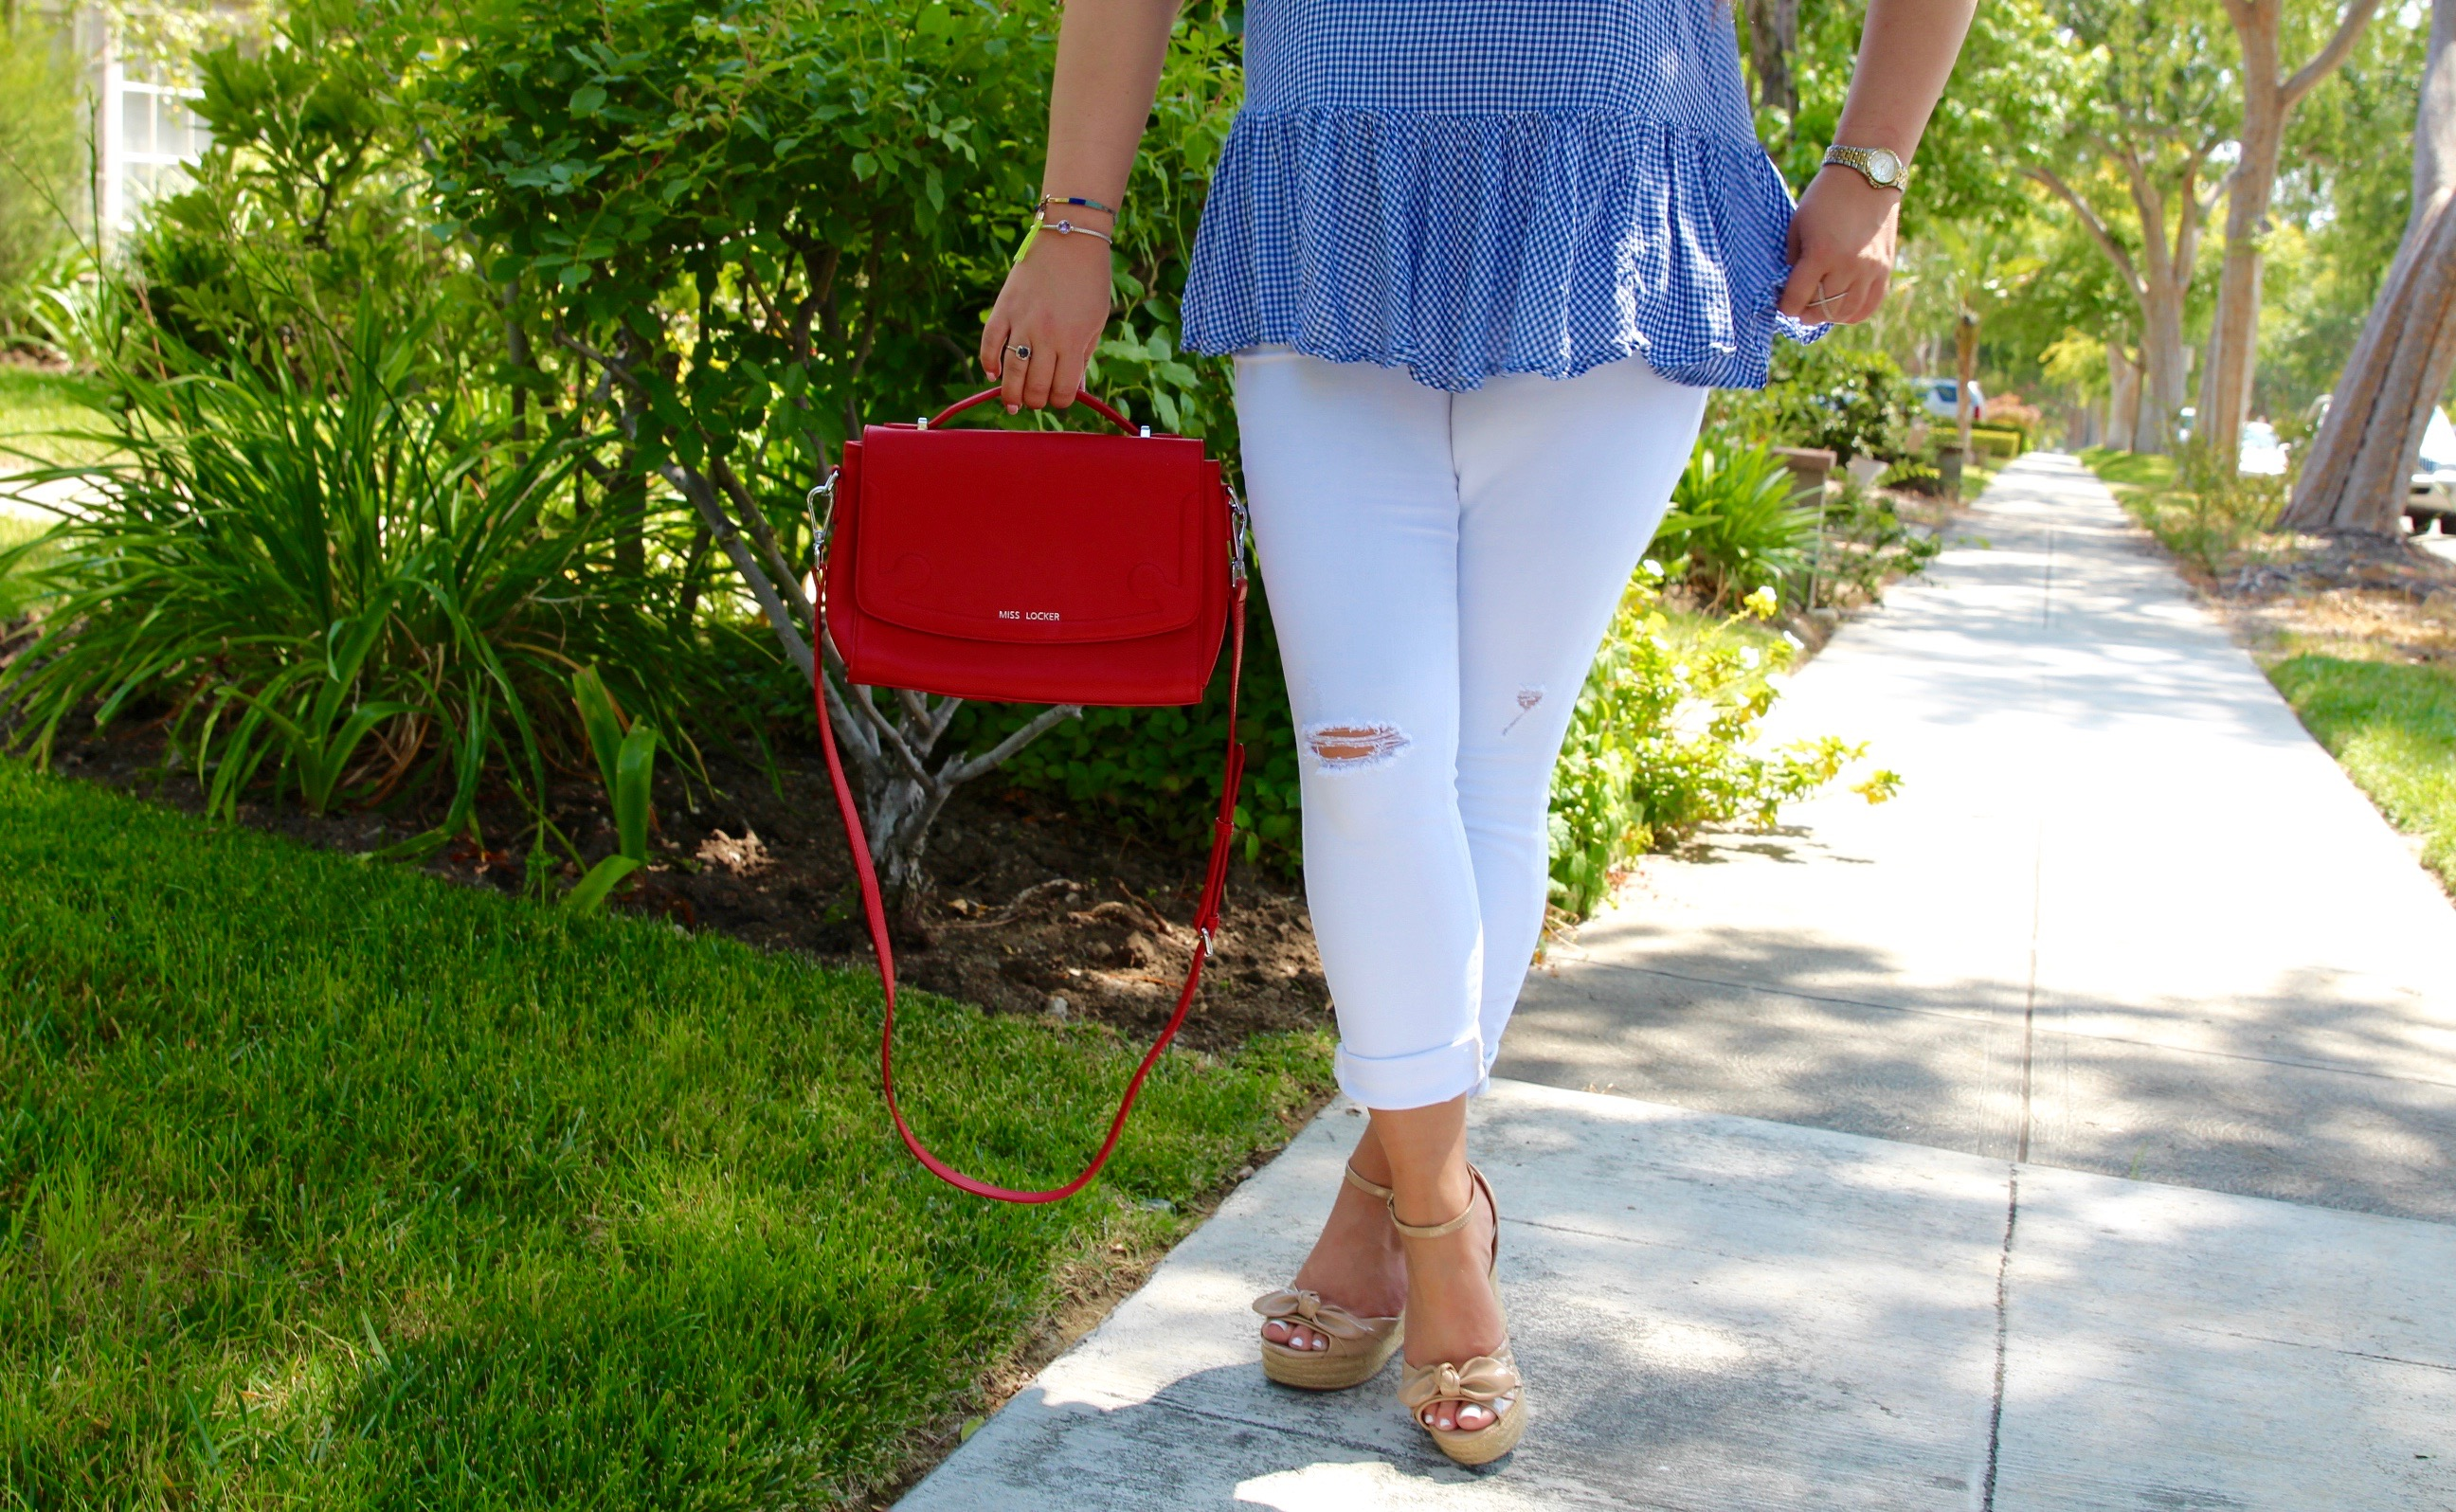 missyonmadison, melissa tierney, gingham print, white skinny jeans, old navy, old navy white rockstar jeans, red miss locker bags, red satchel, red handbag, wayfarer sunglasses, black sunglasses, red lipstick, elizabeth arden lipstick, red lips, la blogger, fashion blogger, summer style, summer trends, how to style white jeans, espadrille wedges, nude wedges, gingham print, how to style gingham print,